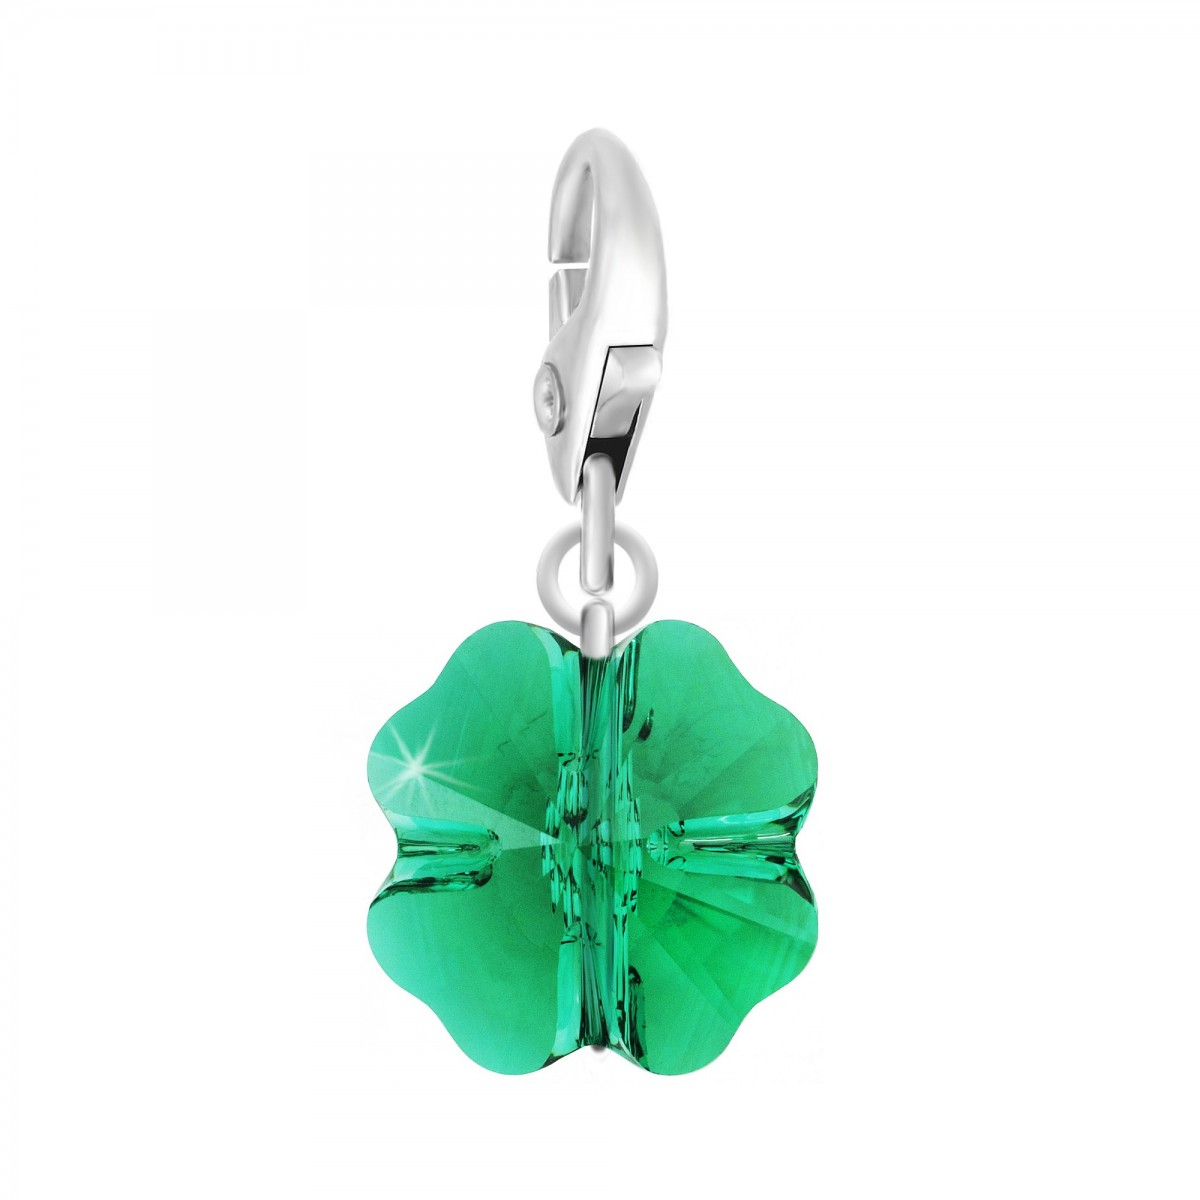 Charm trèfle vert So Charm made with Crystal from Swarovski